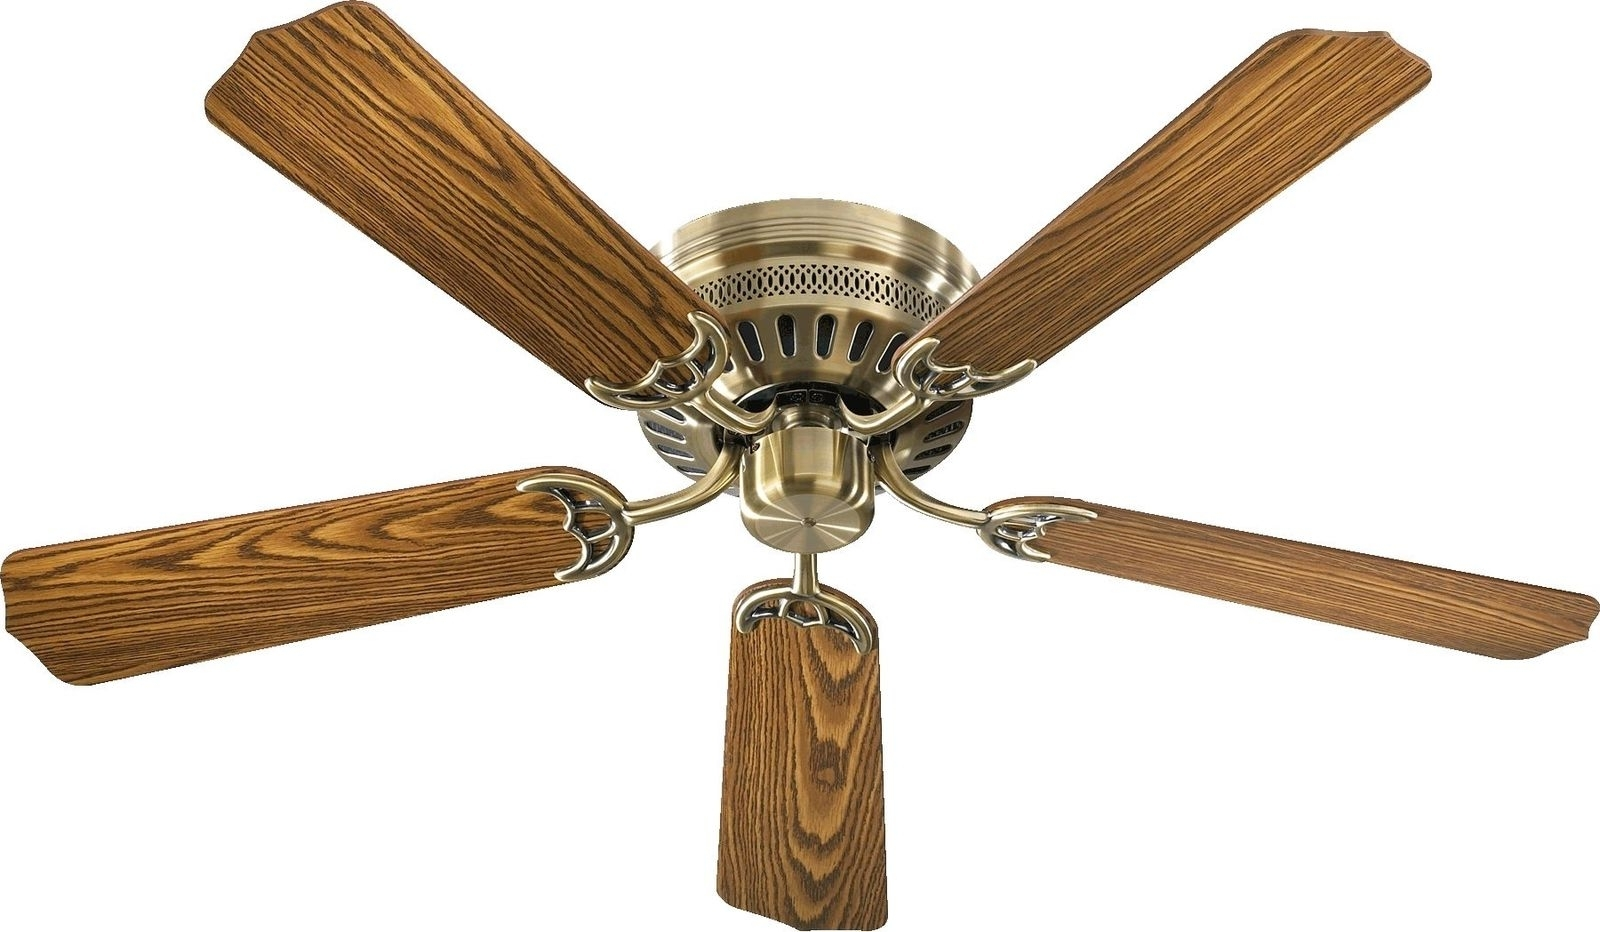 [%free 3 Day Shipping] Quorum Lighting Custom Hugger Ceiling Fan With Famous Quorum Outdoor Ceiling Fans|quorum Outdoor Ceiling Fans Pertaining To Current Free 3 Day Shipping] Quorum Lighting Custom Hugger Ceiling Fan|favorite Quorum Outdoor Ceiling Fans With Free 3 Day Shipping] Quorum Lighting Custom Hugger Ceiling Fan|latest Free 3 Day Shipping] Quorum Lighting Custom Hugger Ceiling Fan Intended For Quorum Outdoor Ceiling Fans%] (View 8 of 20)